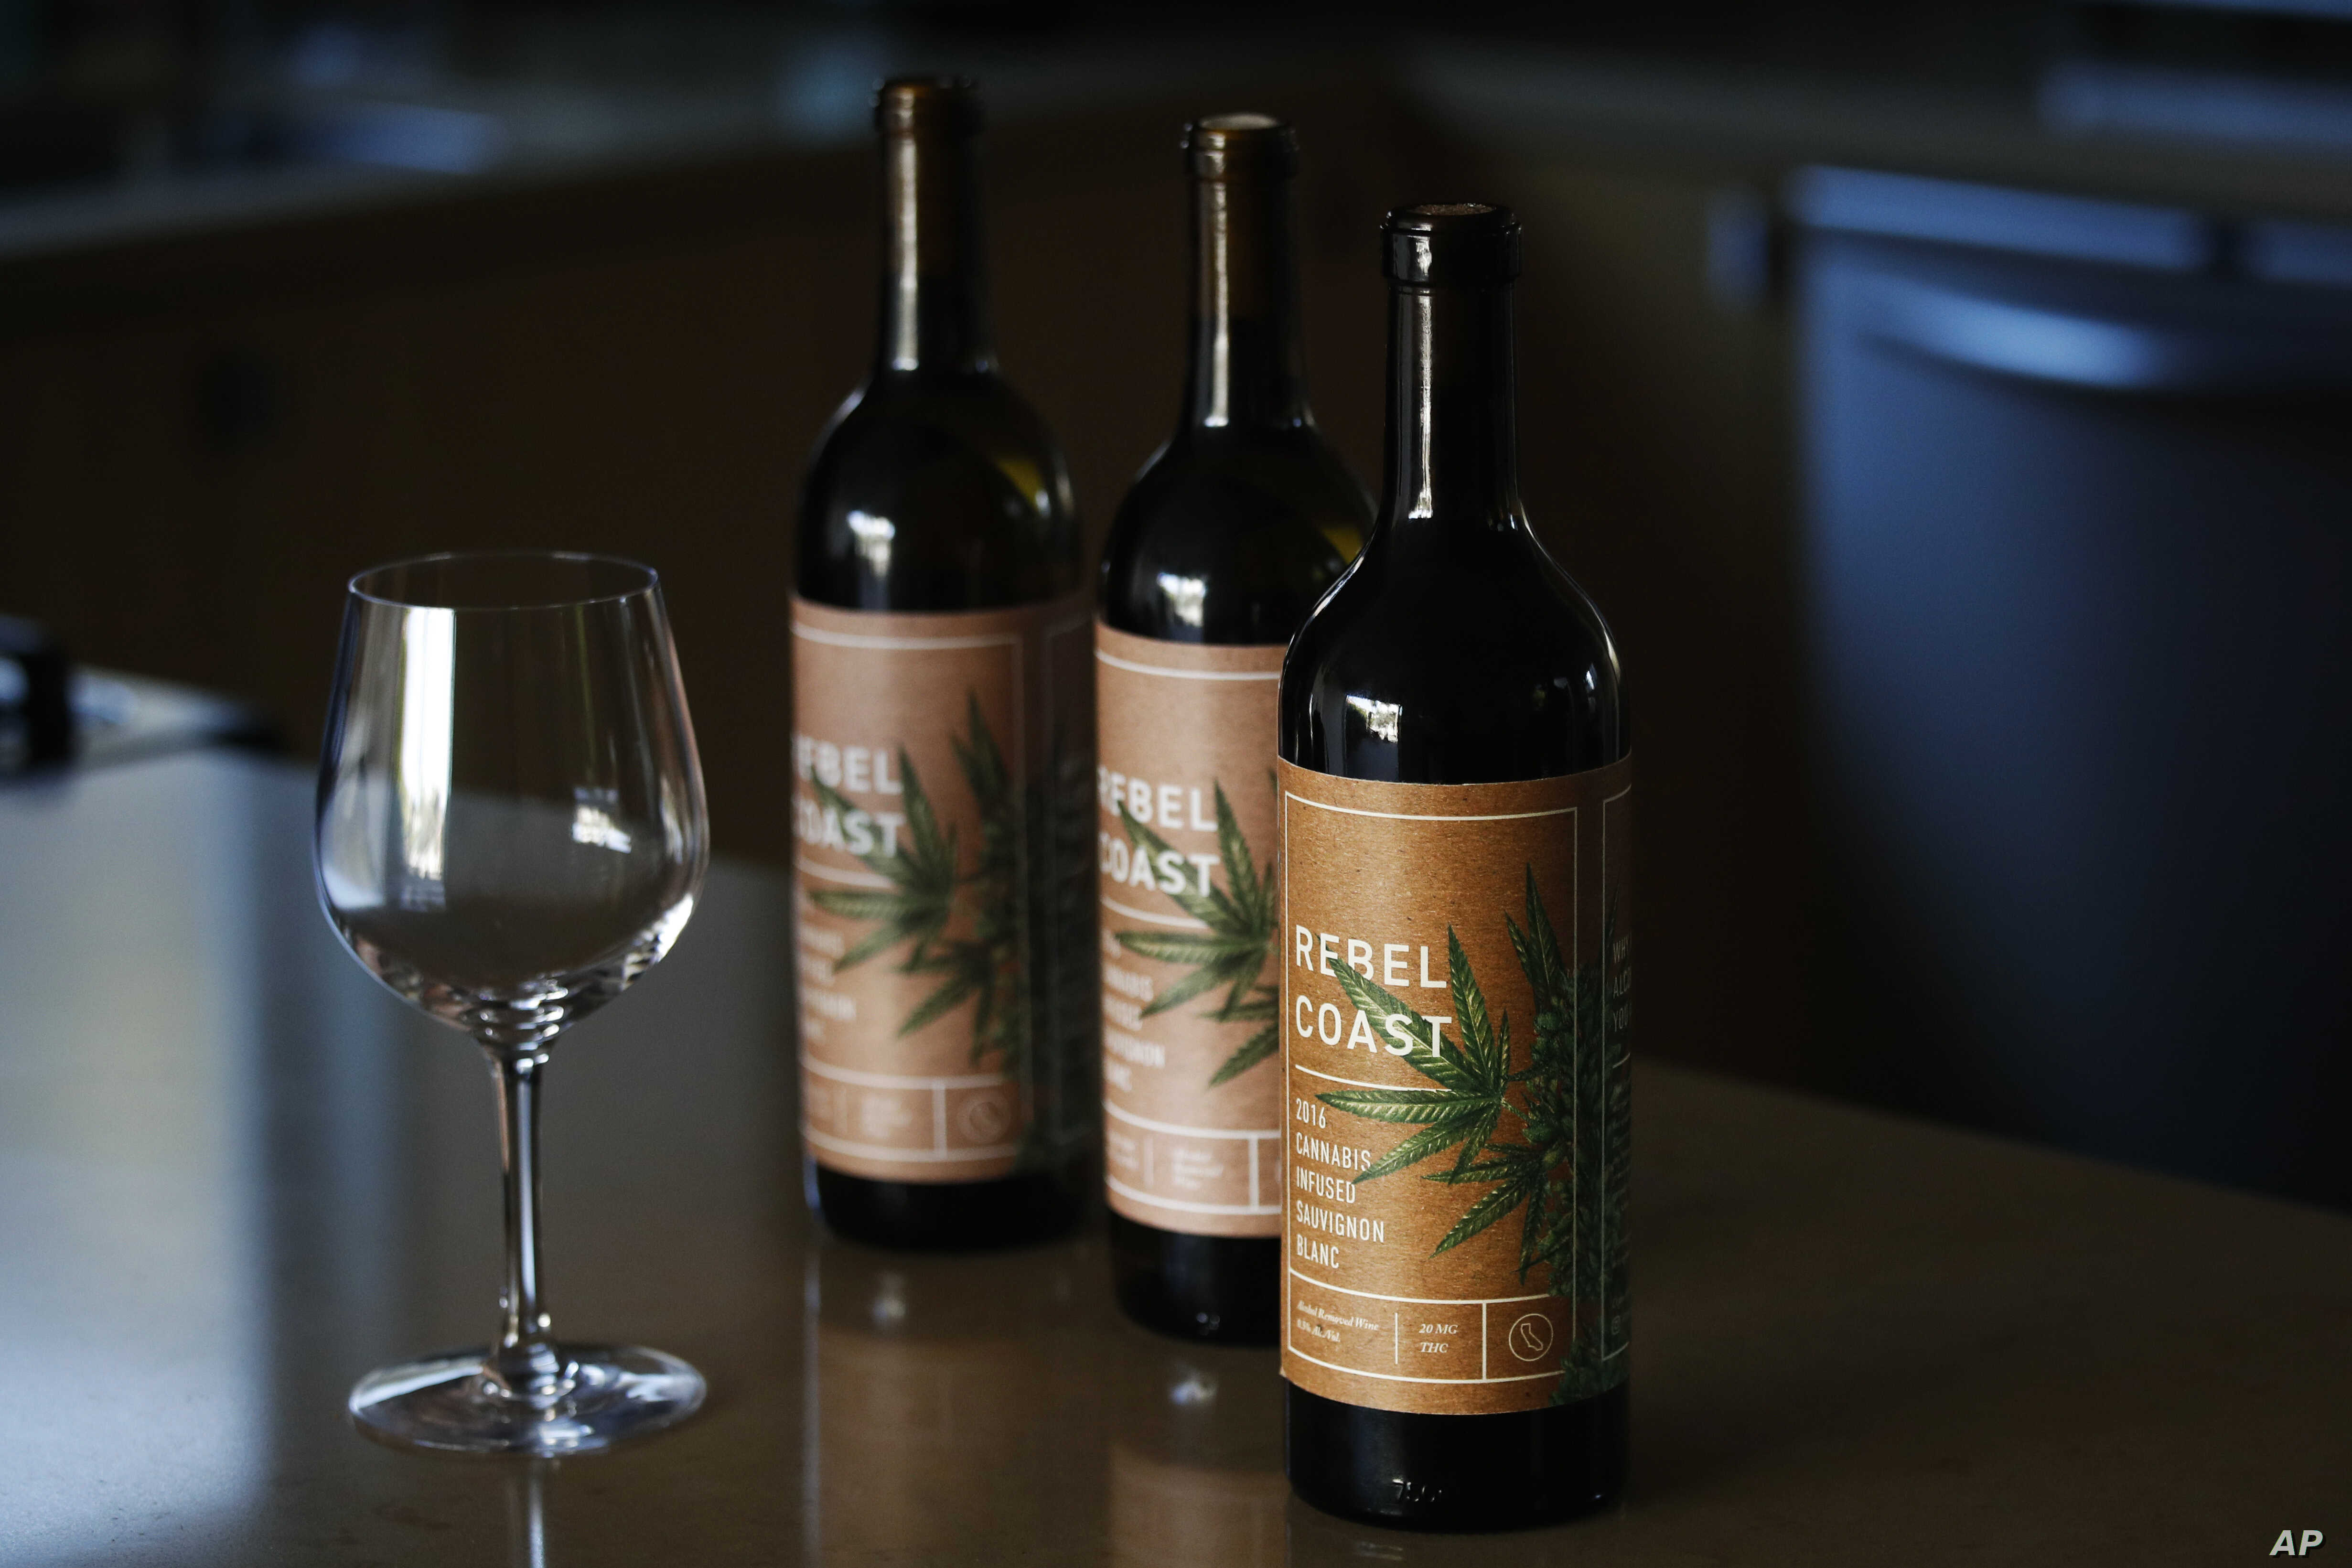 In this Dec. 22, 2017, photo, three bottles of Rebel Coast Winery's cannabis-infused wine is displayed in Los Angeles.